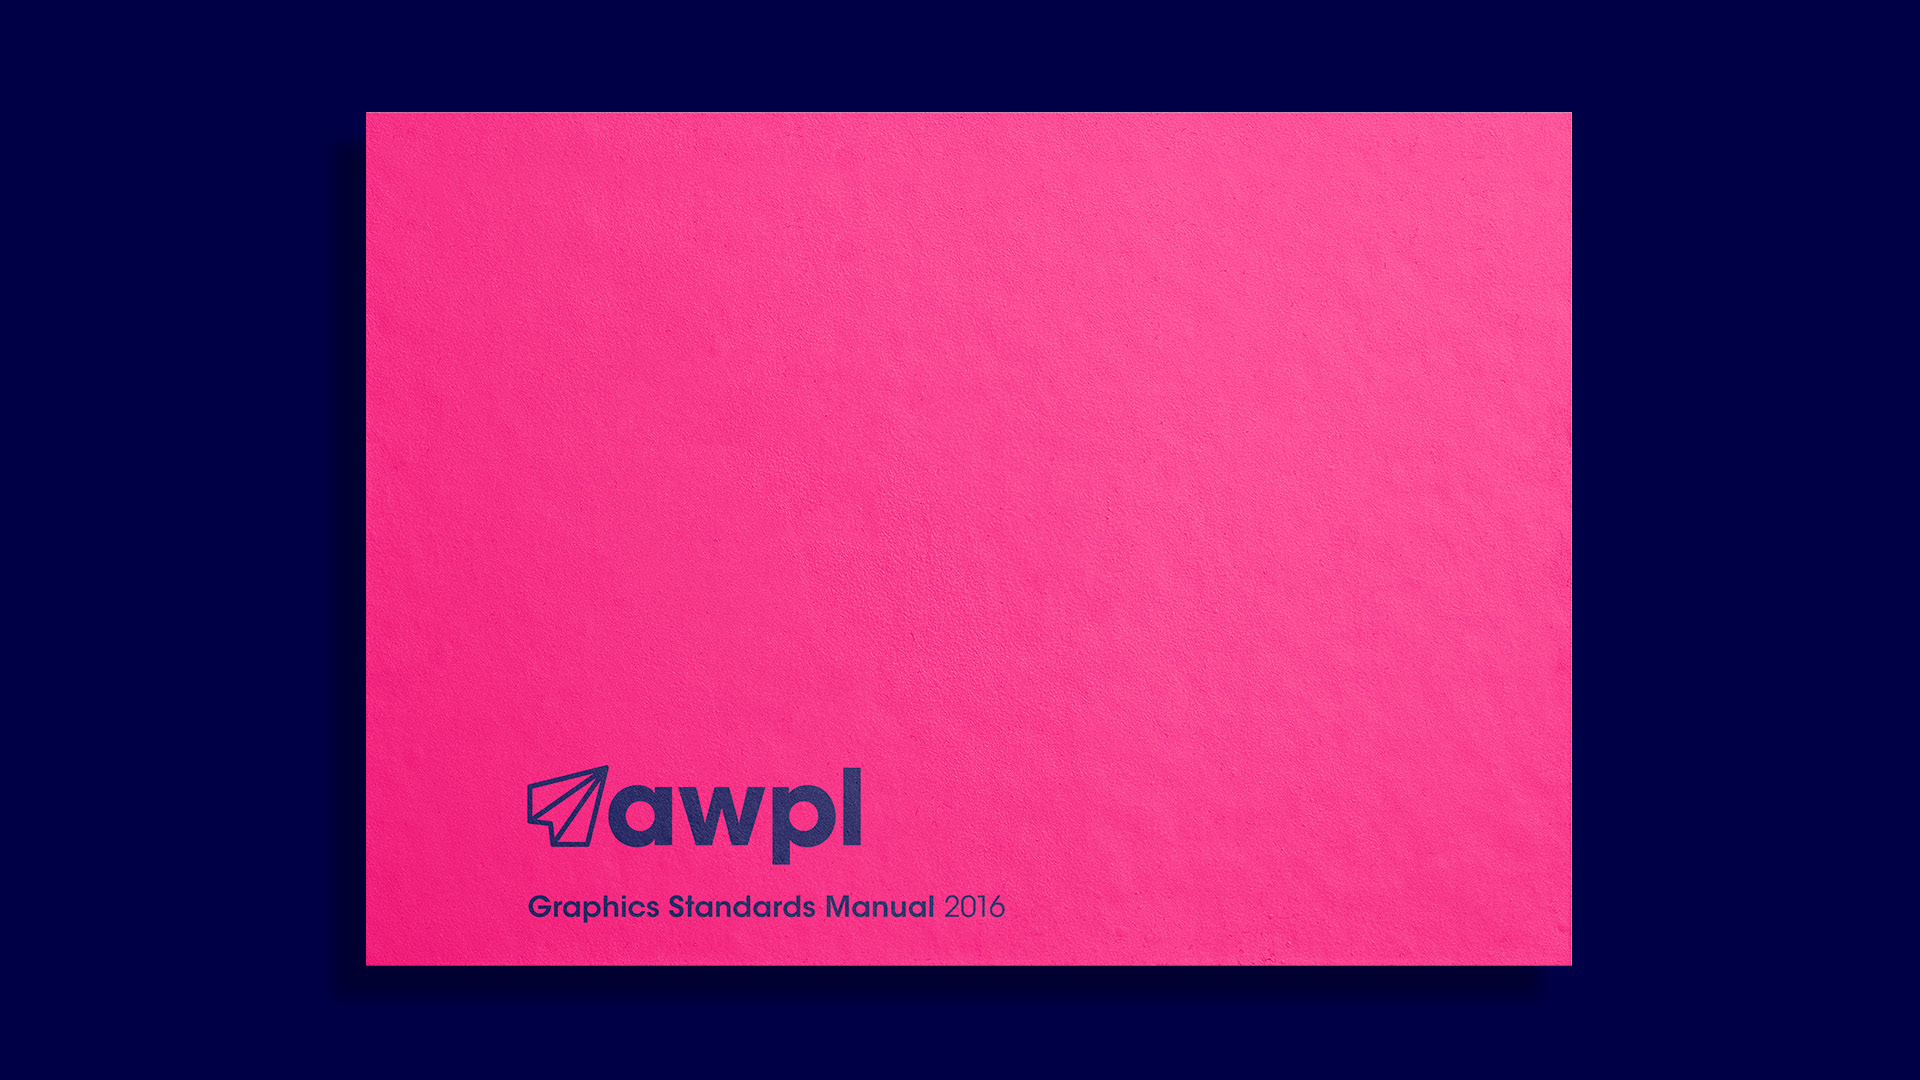 awpl Project Images3